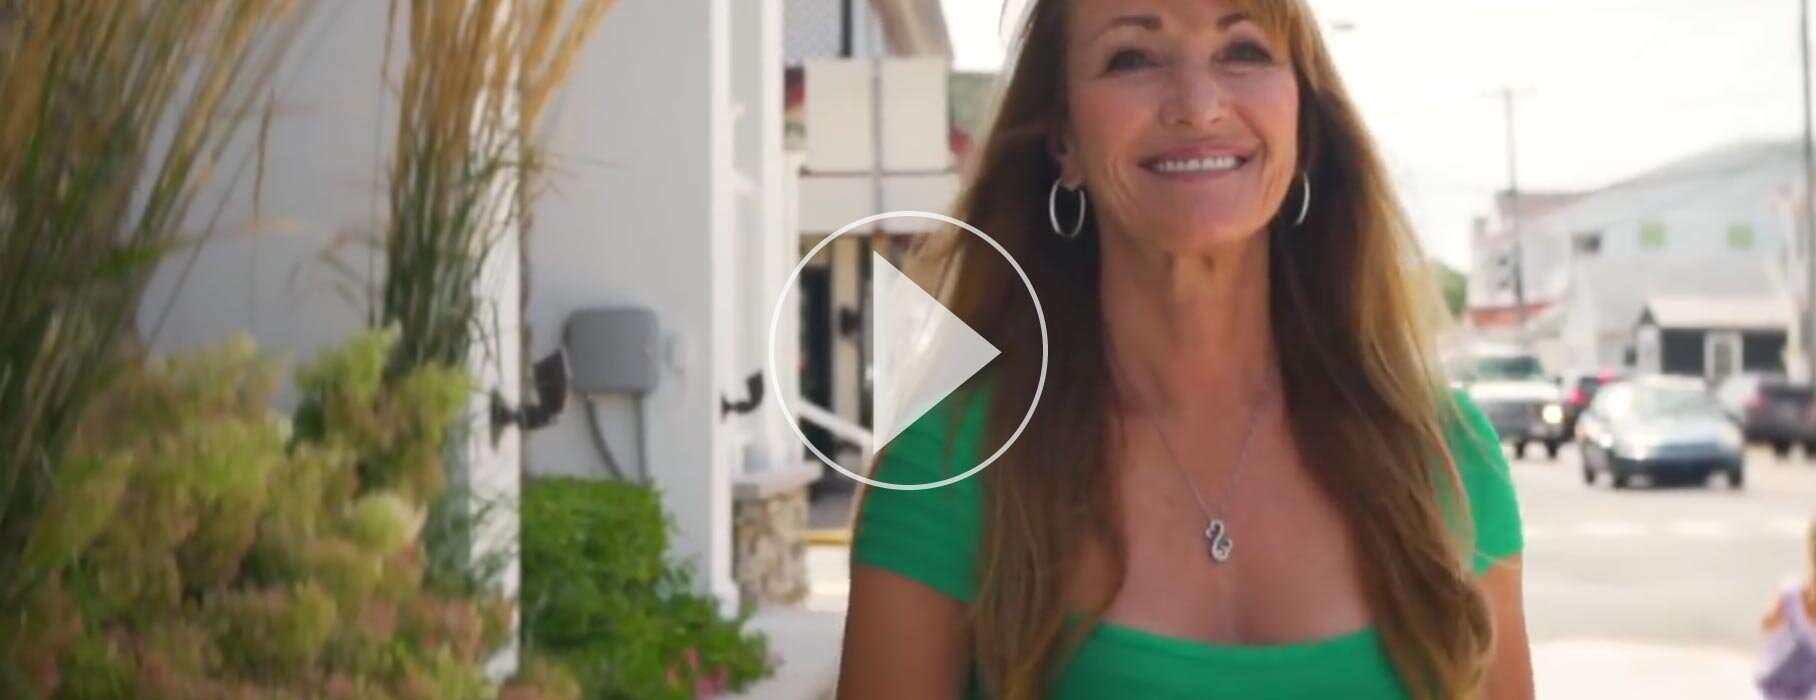 JANE SEYMOUR ON ART AND INSPIRATION — CLICK ON THE IMAGE ABOVE TO VIEW VIDEO